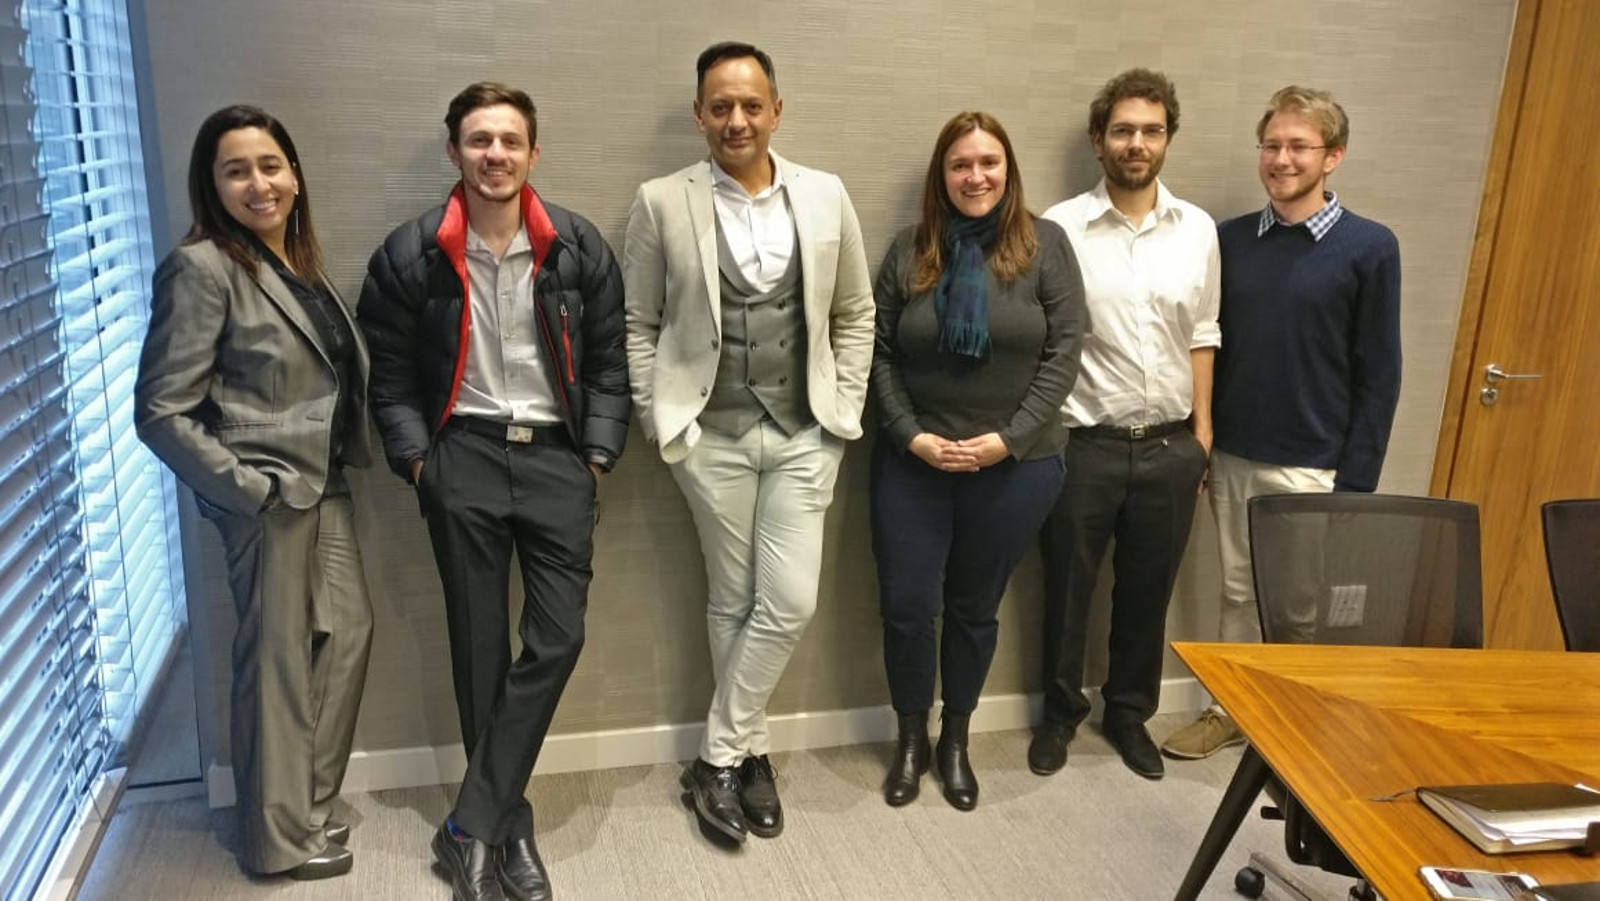 Portable Lawyer team (from left to right): Safiyya Patel, Kerren Ortlepp; Hoosain Karjieker, Melanie van Biljon, Yves Rivard and Liam Brooksbank